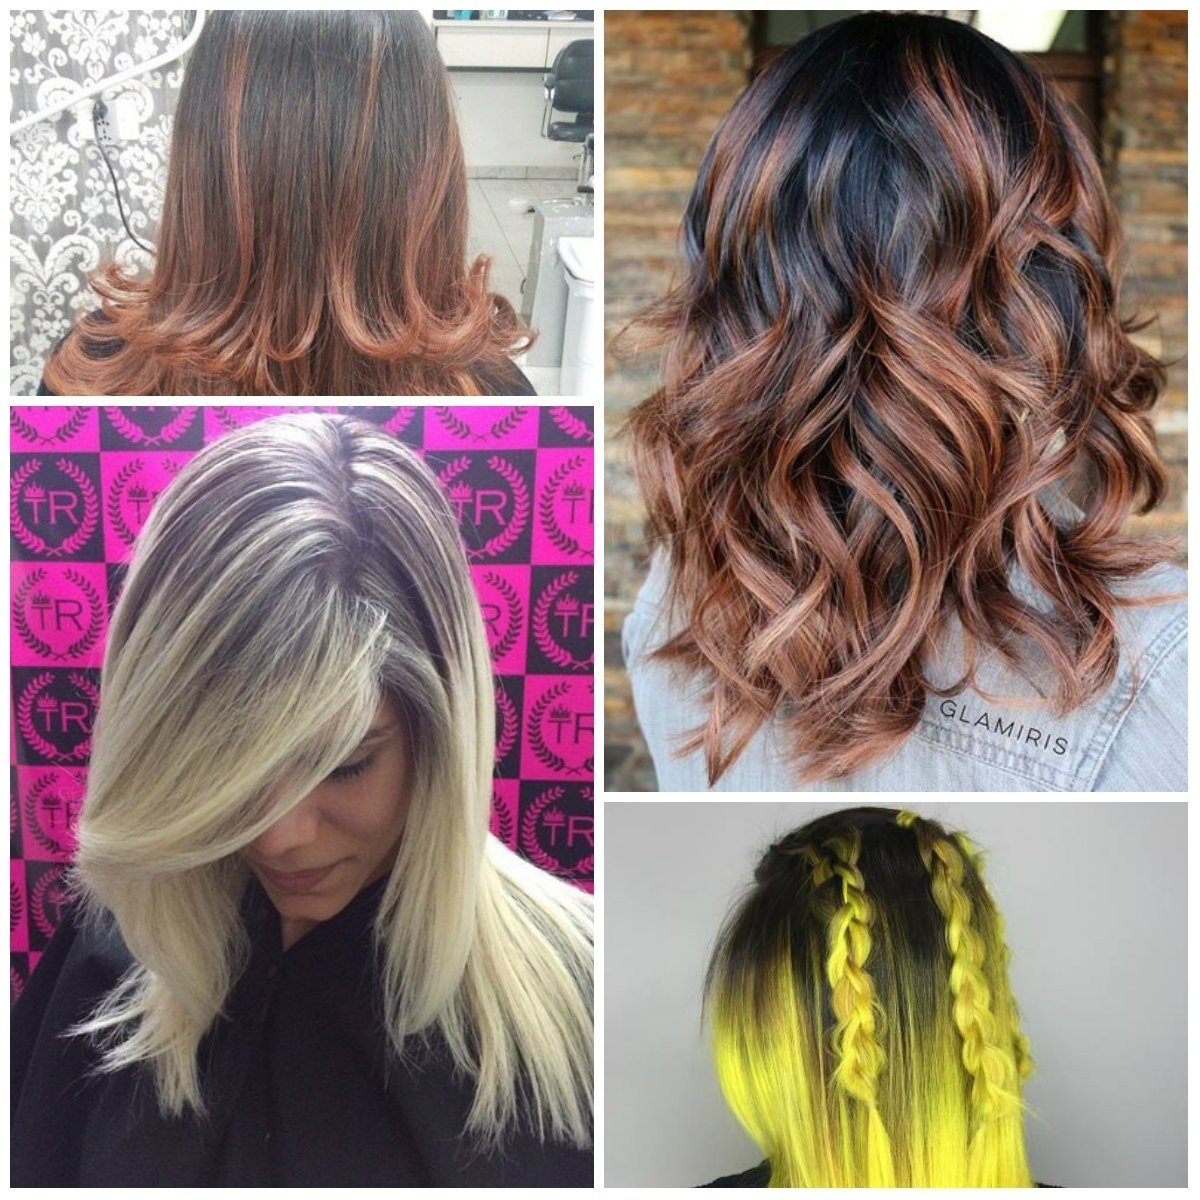 two-tone hair color ideas | new hair color ideas & trends for 2017